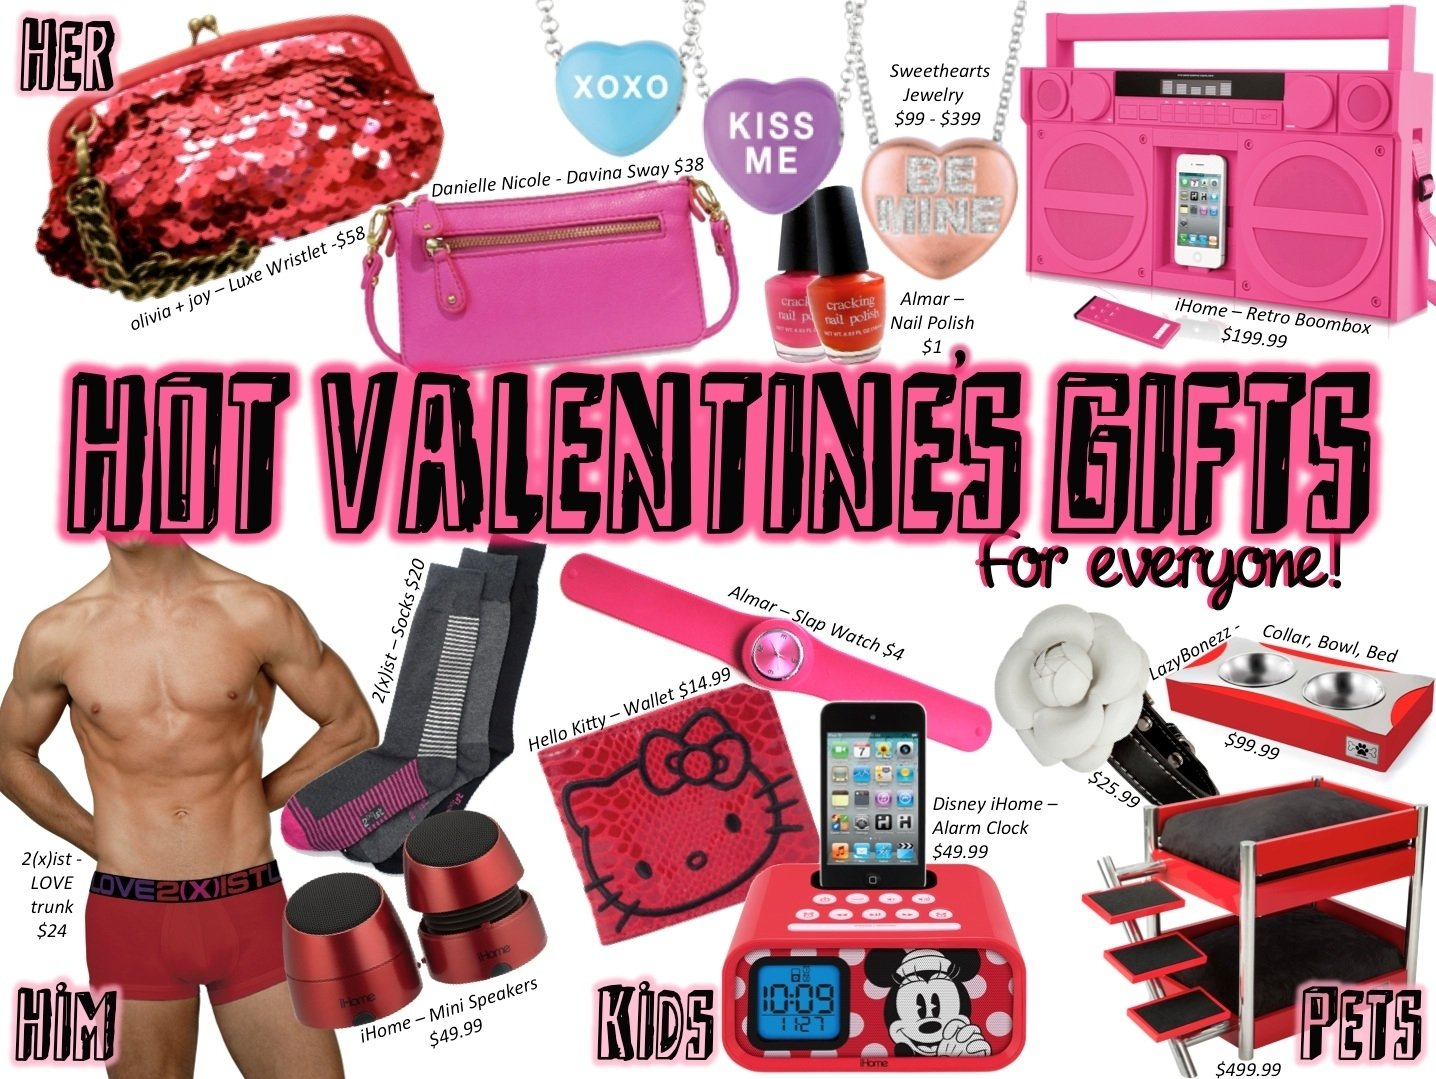 10 Pretty Valentines Day Ideas For Guys best valentines day gifts for guys startupcorner co 2020